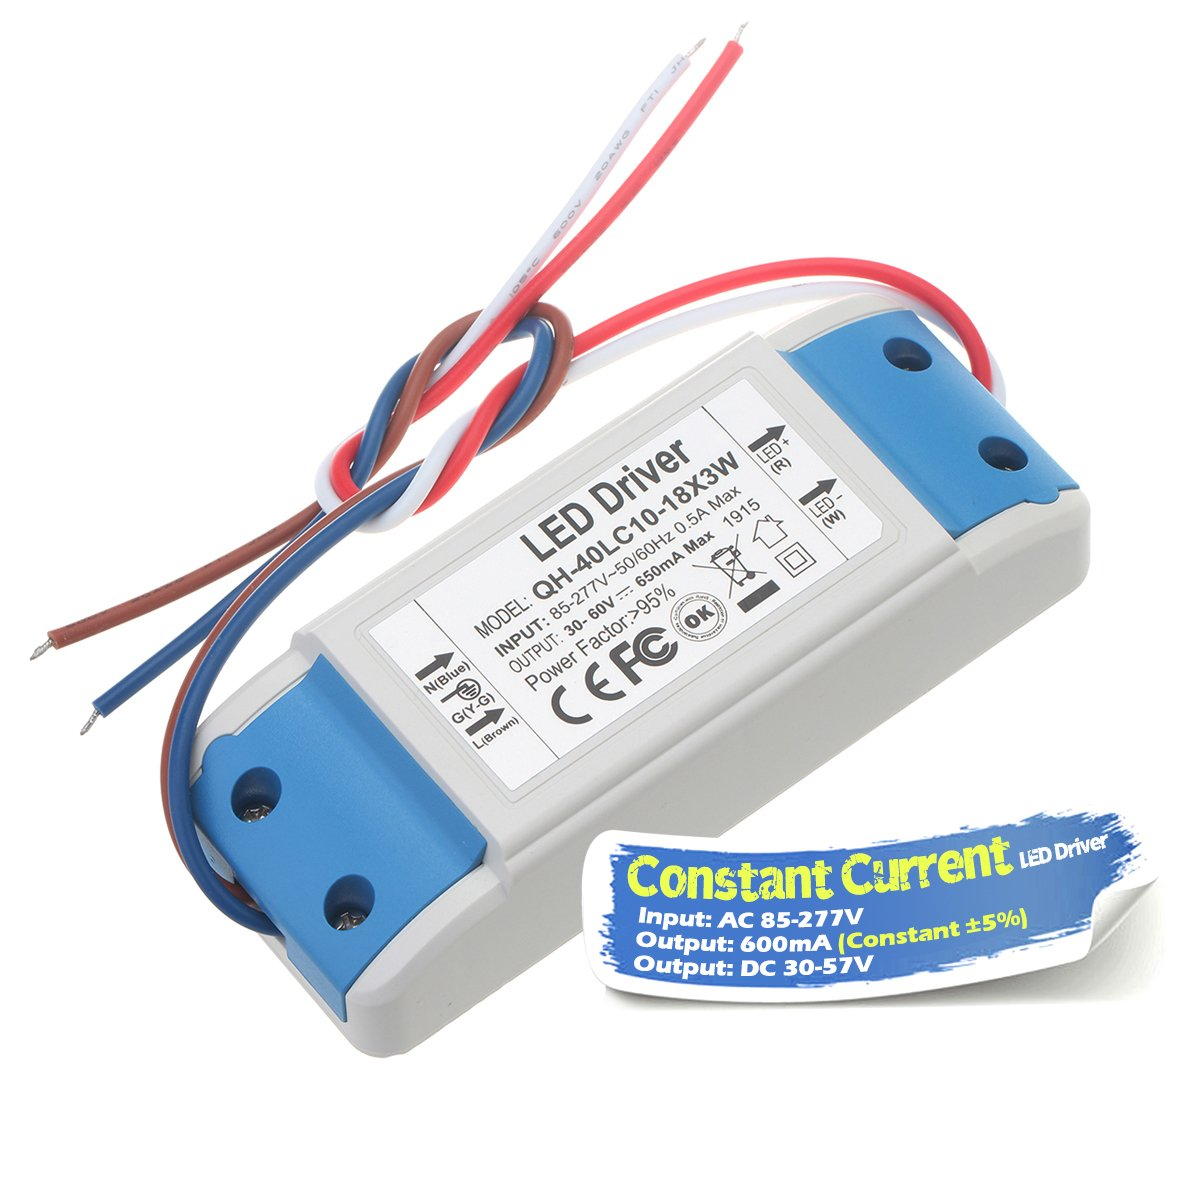 Chanzon Led Driver 600ma Constant Current Output 18v 34v In 85 Power Circuit 277v Ac Dc 6 10 X3w 18w 20w 21w 24w 27w 30w Supply 600 Ma Lighting Transformer